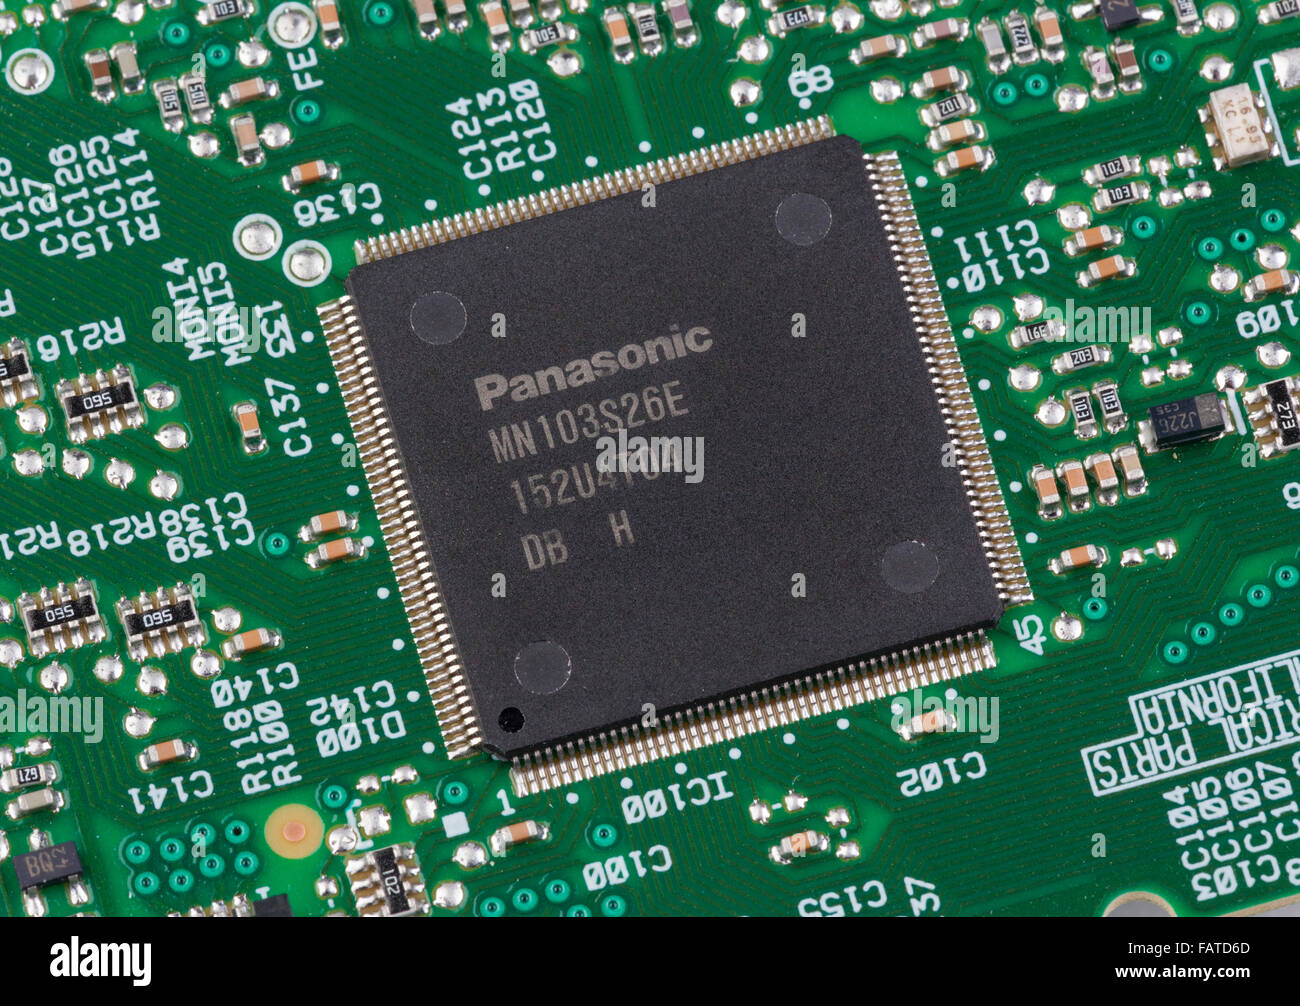 Panasonic chip integrated circuit - Stock Image